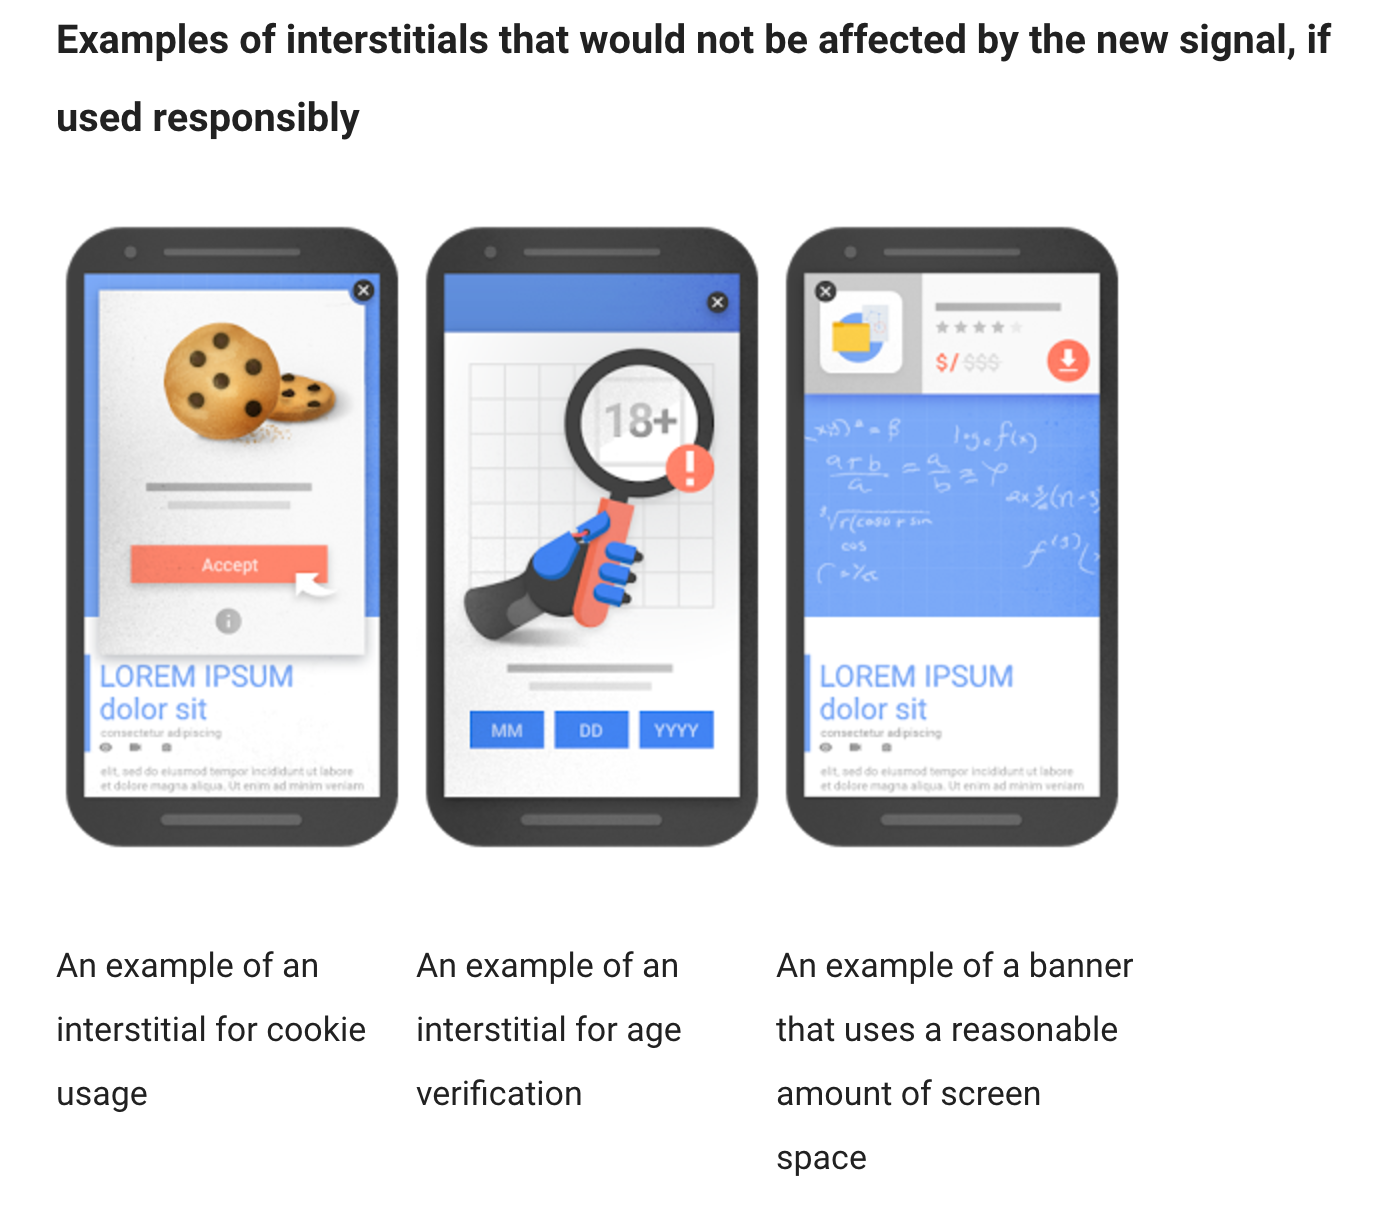 These interstitial ads are A-OK with Google. Note that they each serve a functional purpose.